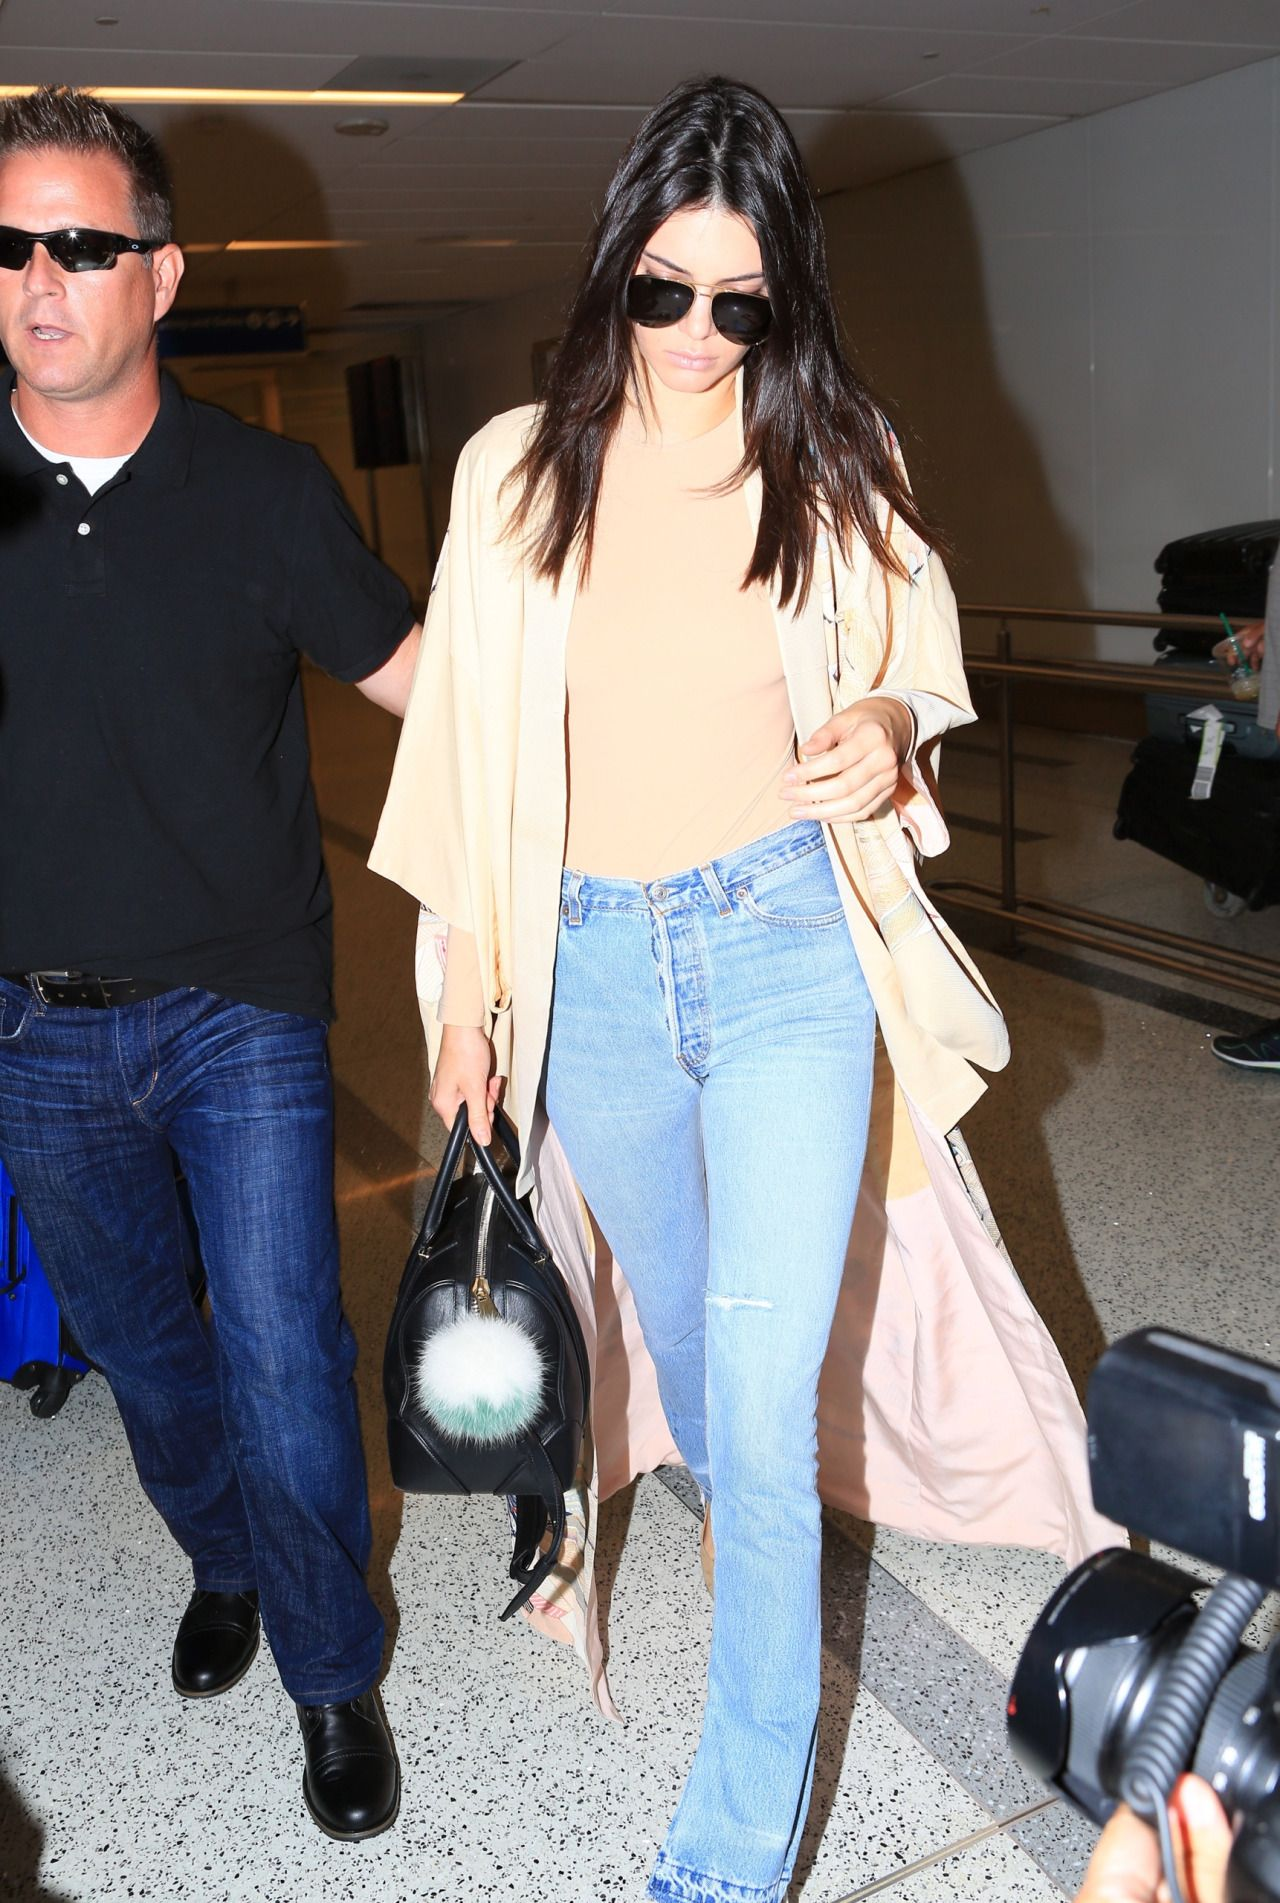 Queen Kendall — kimkardashianarmy: Kendall Jenner arriving at...